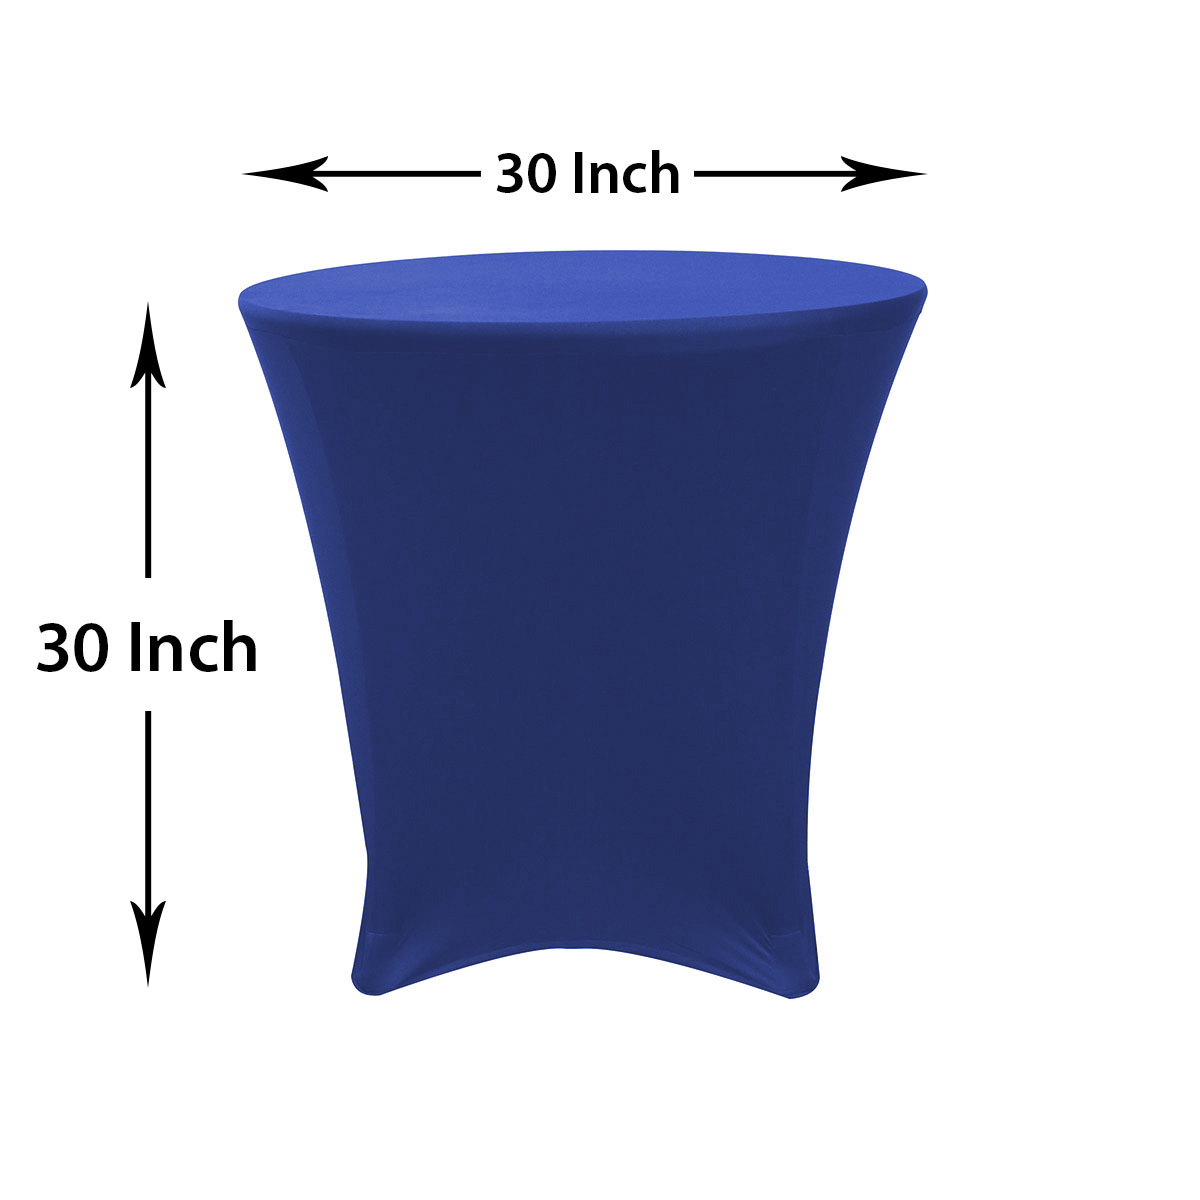 30-30-inch-lowboy-cocktail-spandex-table-covers-royal-dimensions.jpg